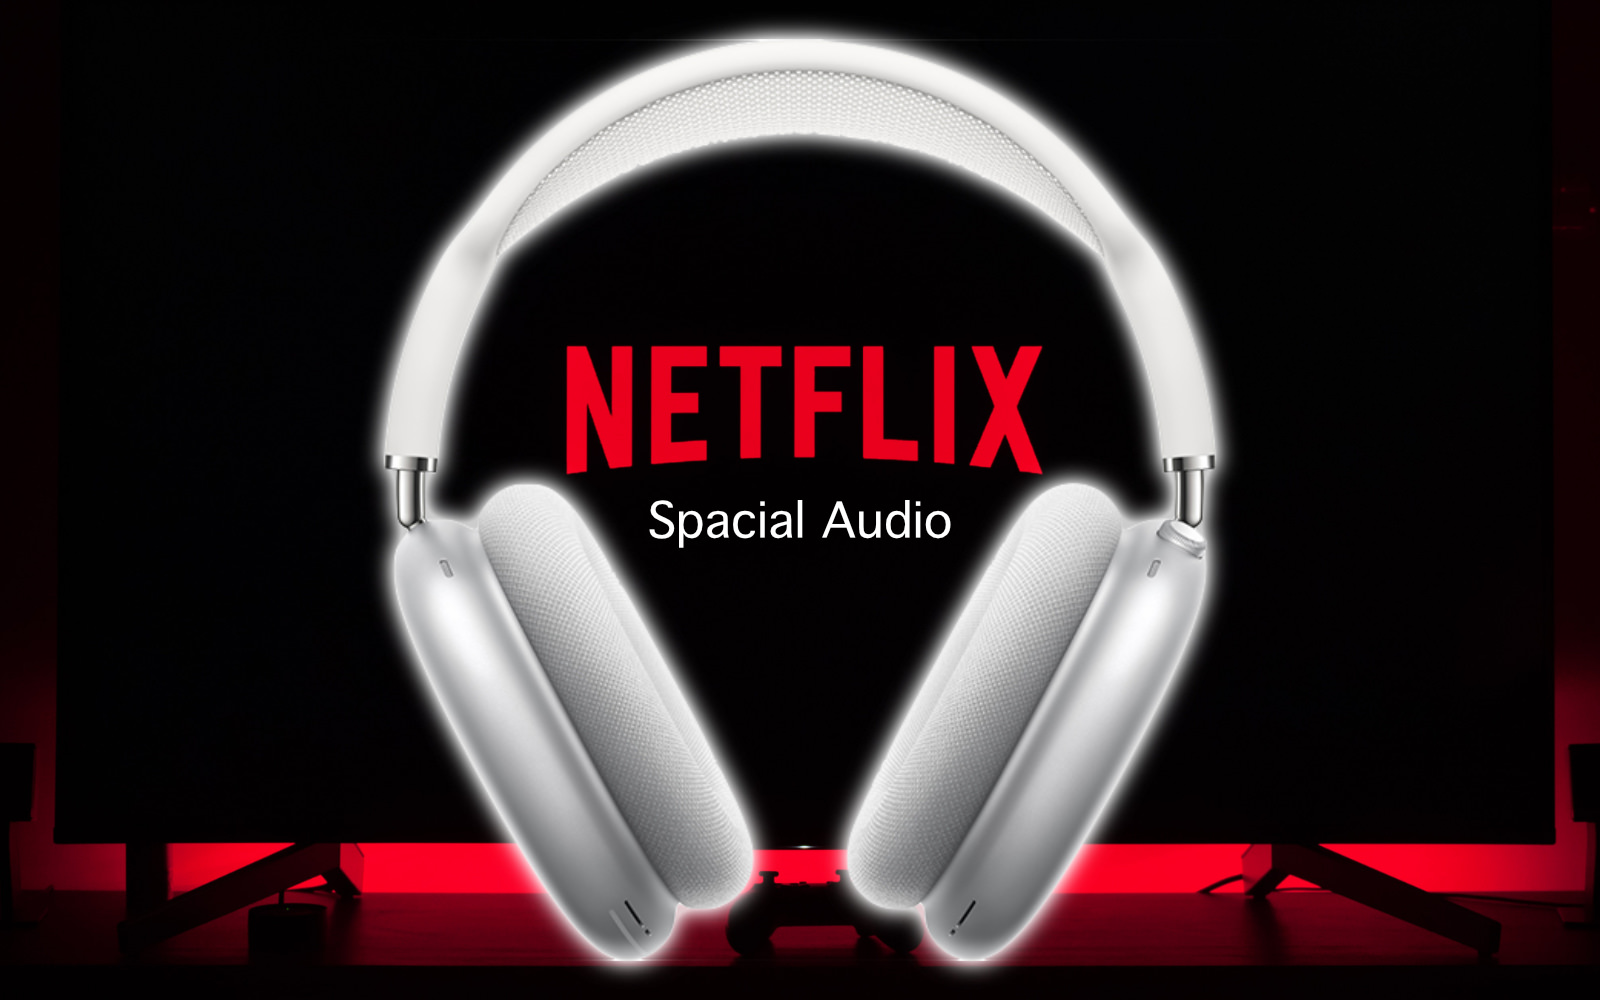 Netflix and Spacial Audio Support